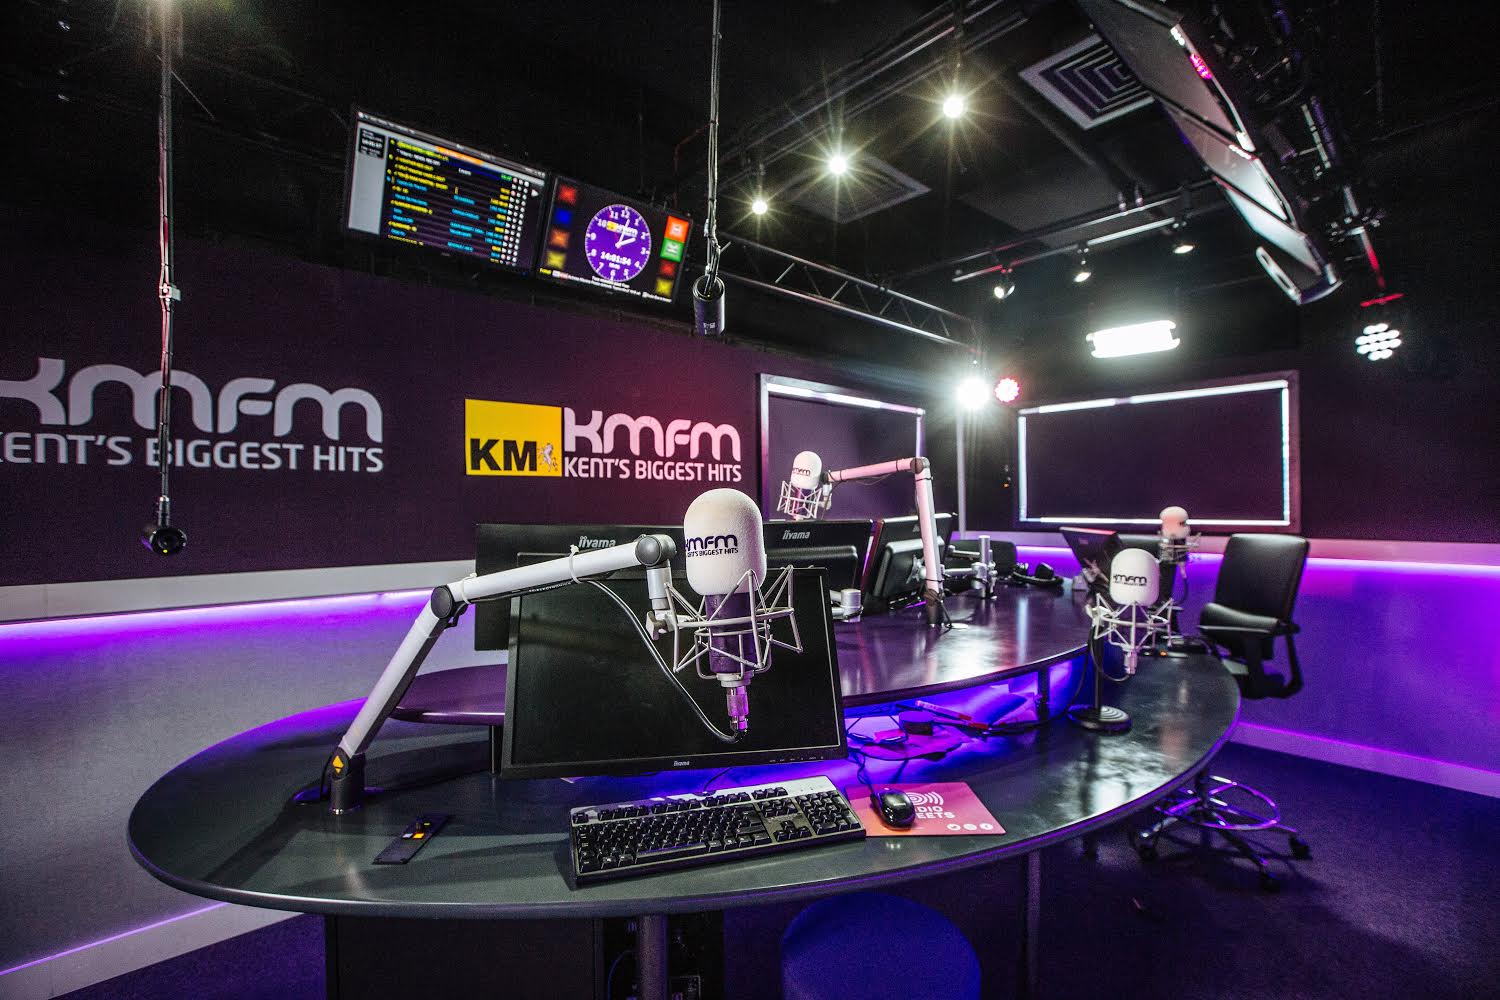 kmfm UK Goes Virtual with Omnia Enterprise 9s High-Density Virtual Audio Processing